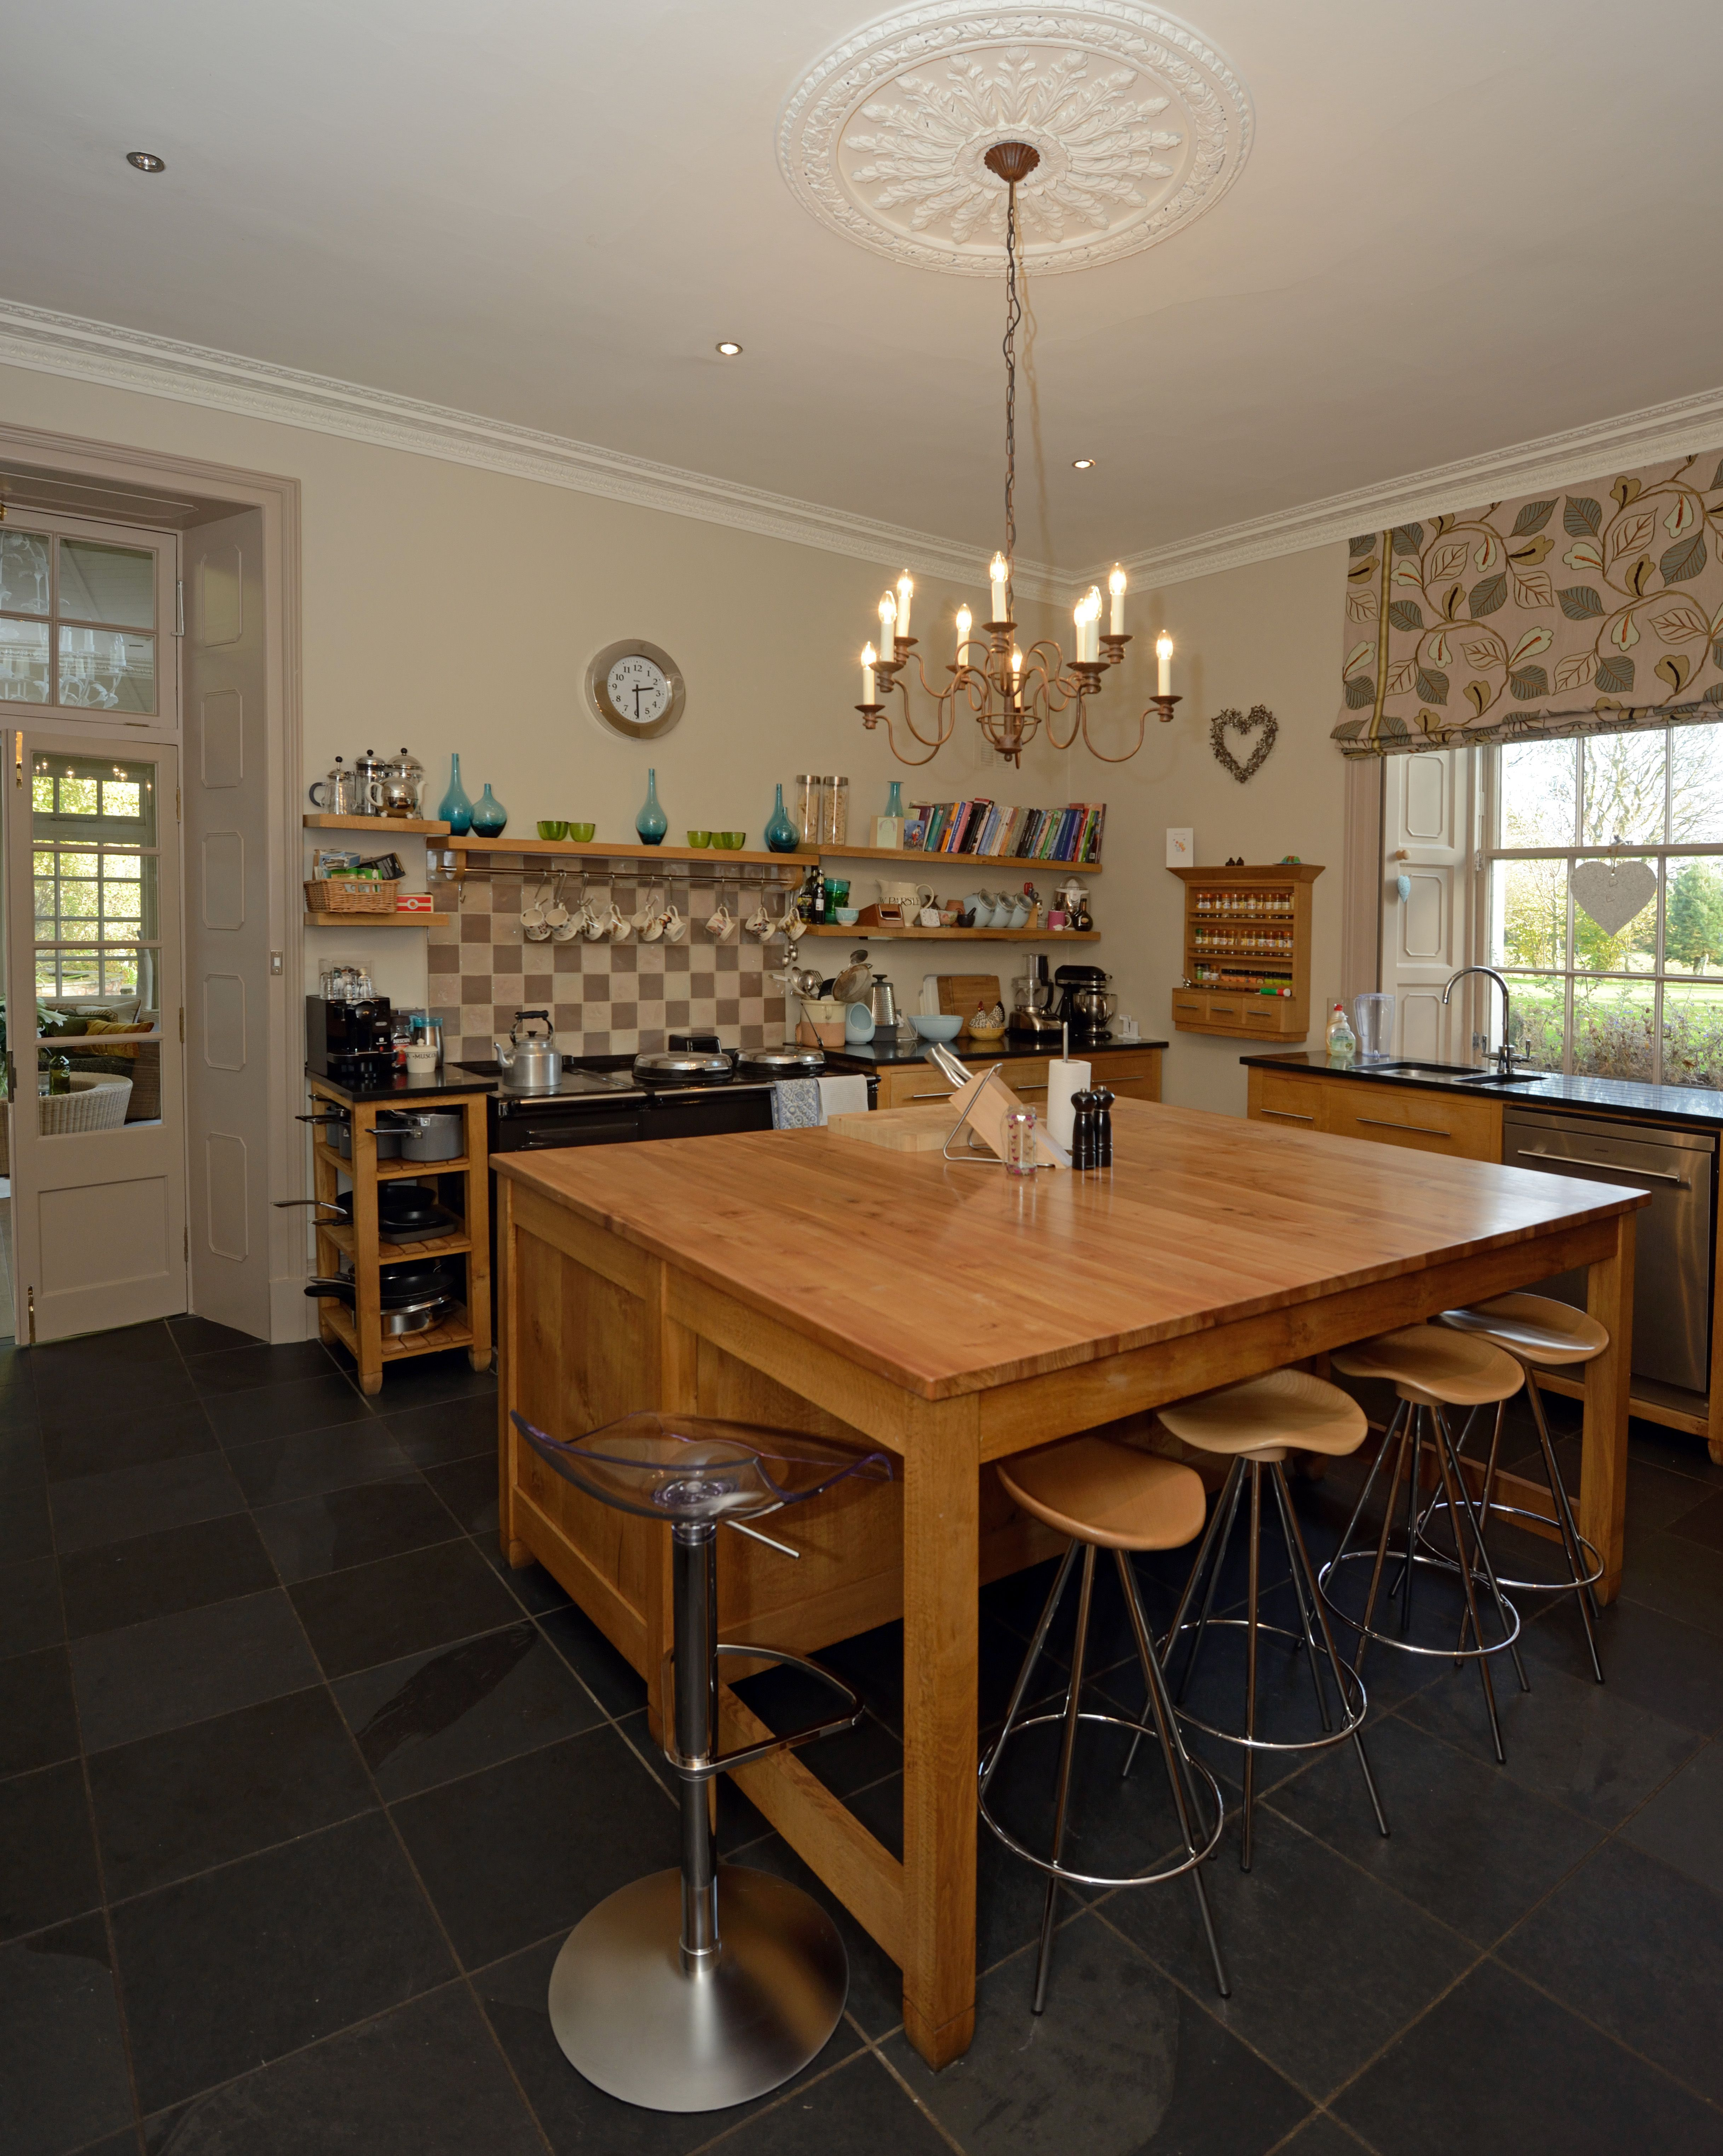 Cat's Paw Oak kitchen island with seating | Bespoke Wood Kitchens ...